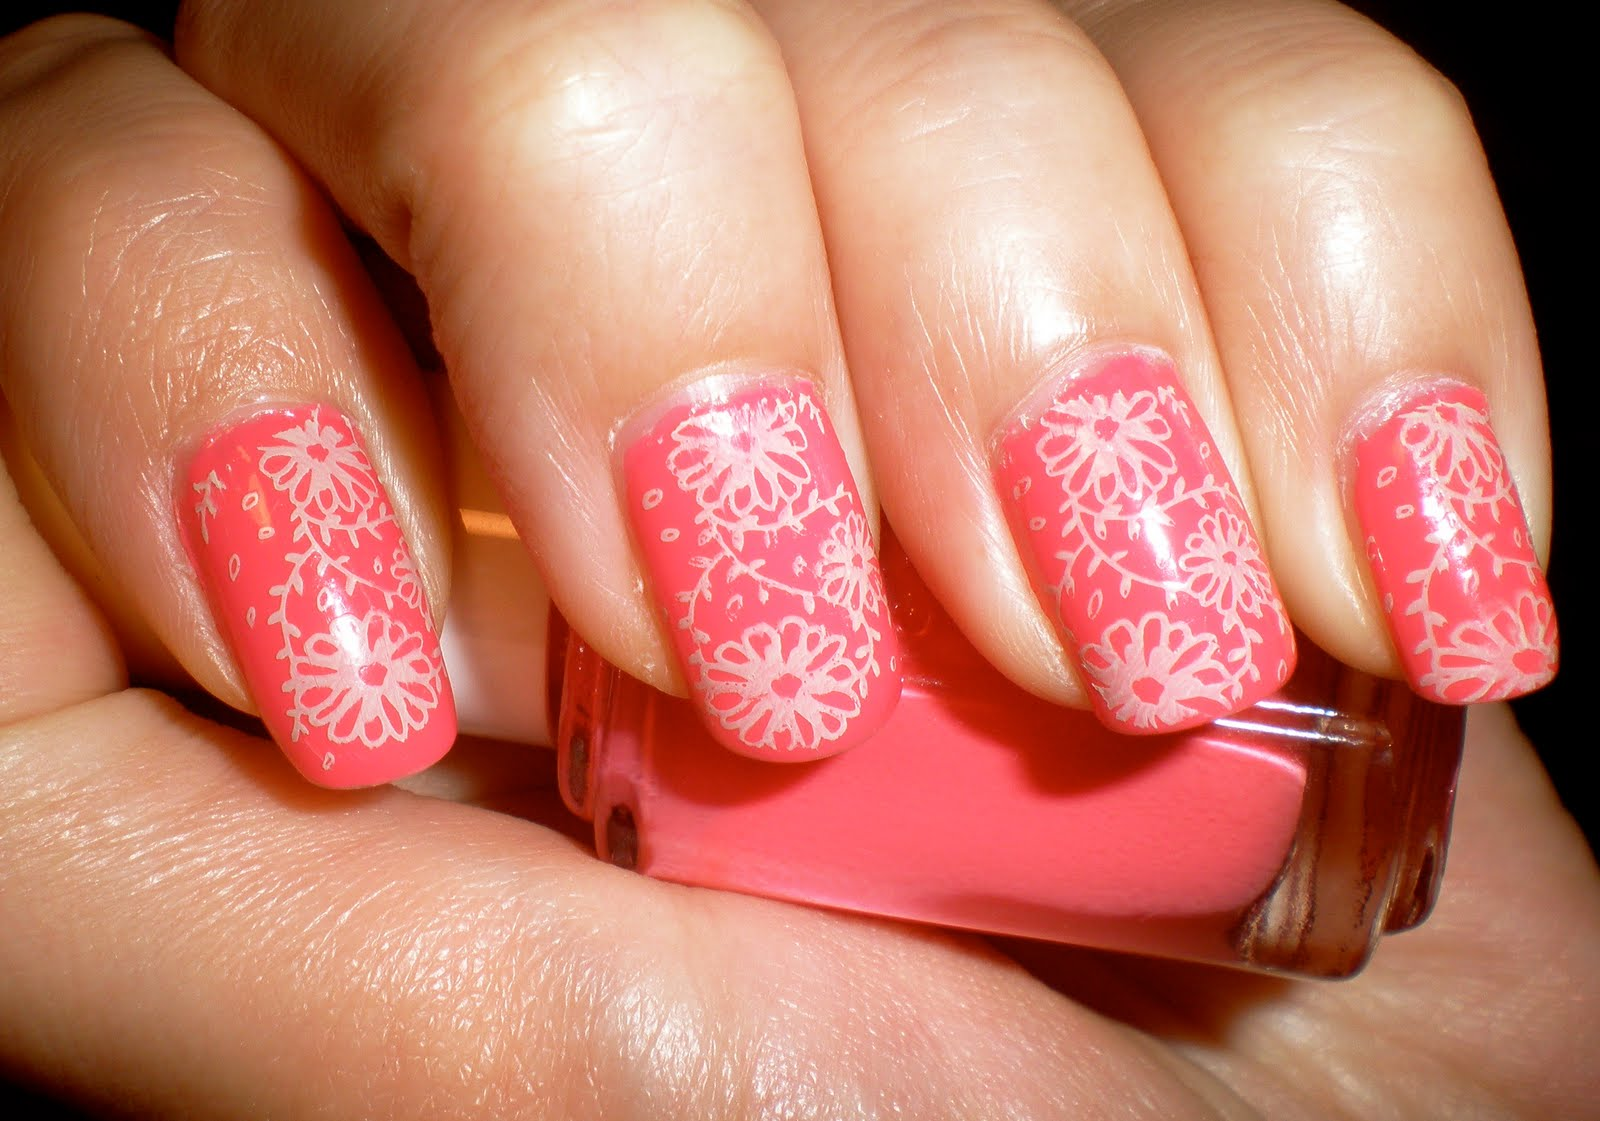 Cute do it yourself nail designs cute do it yourself nail designs 15 super easy nail art ideas that your friends solutioingenieria Images